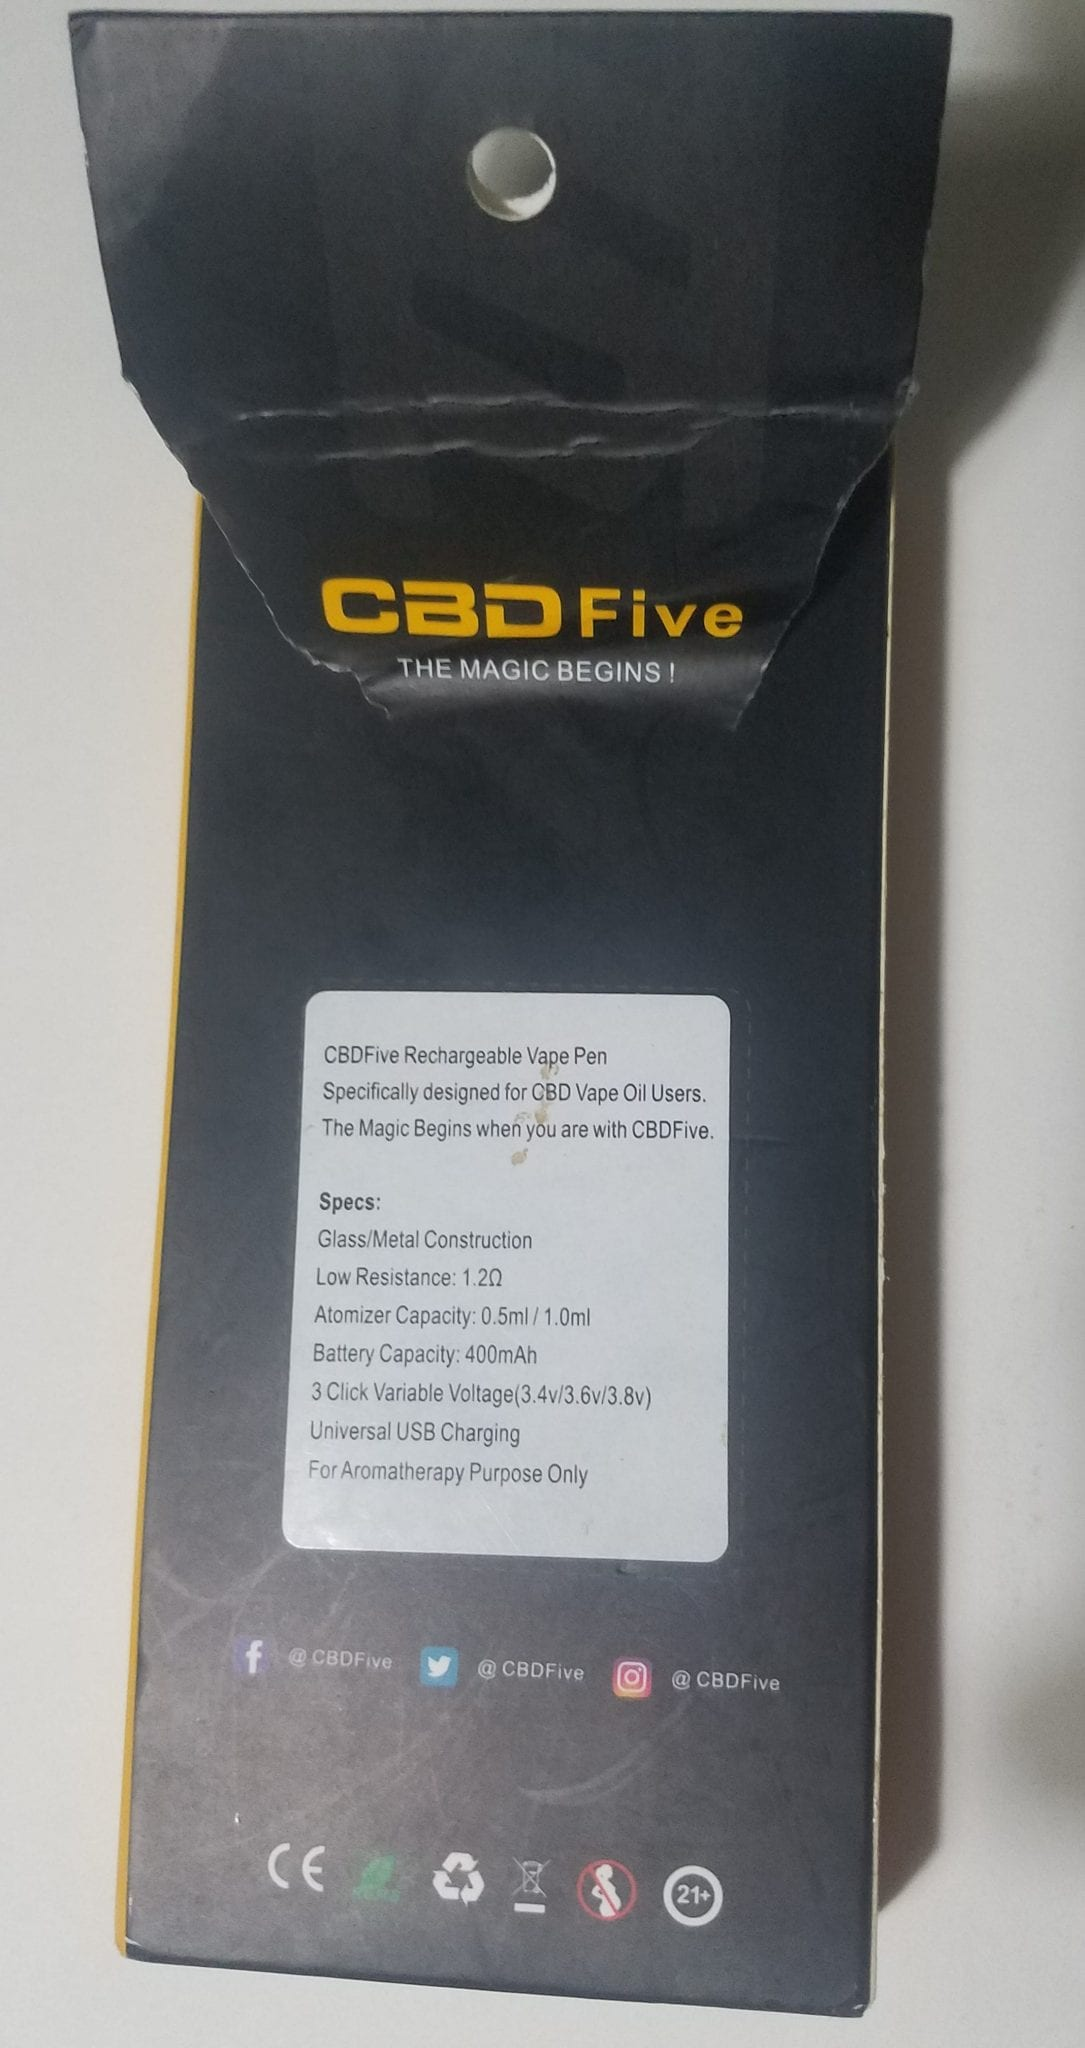 CBD5 exterior package text